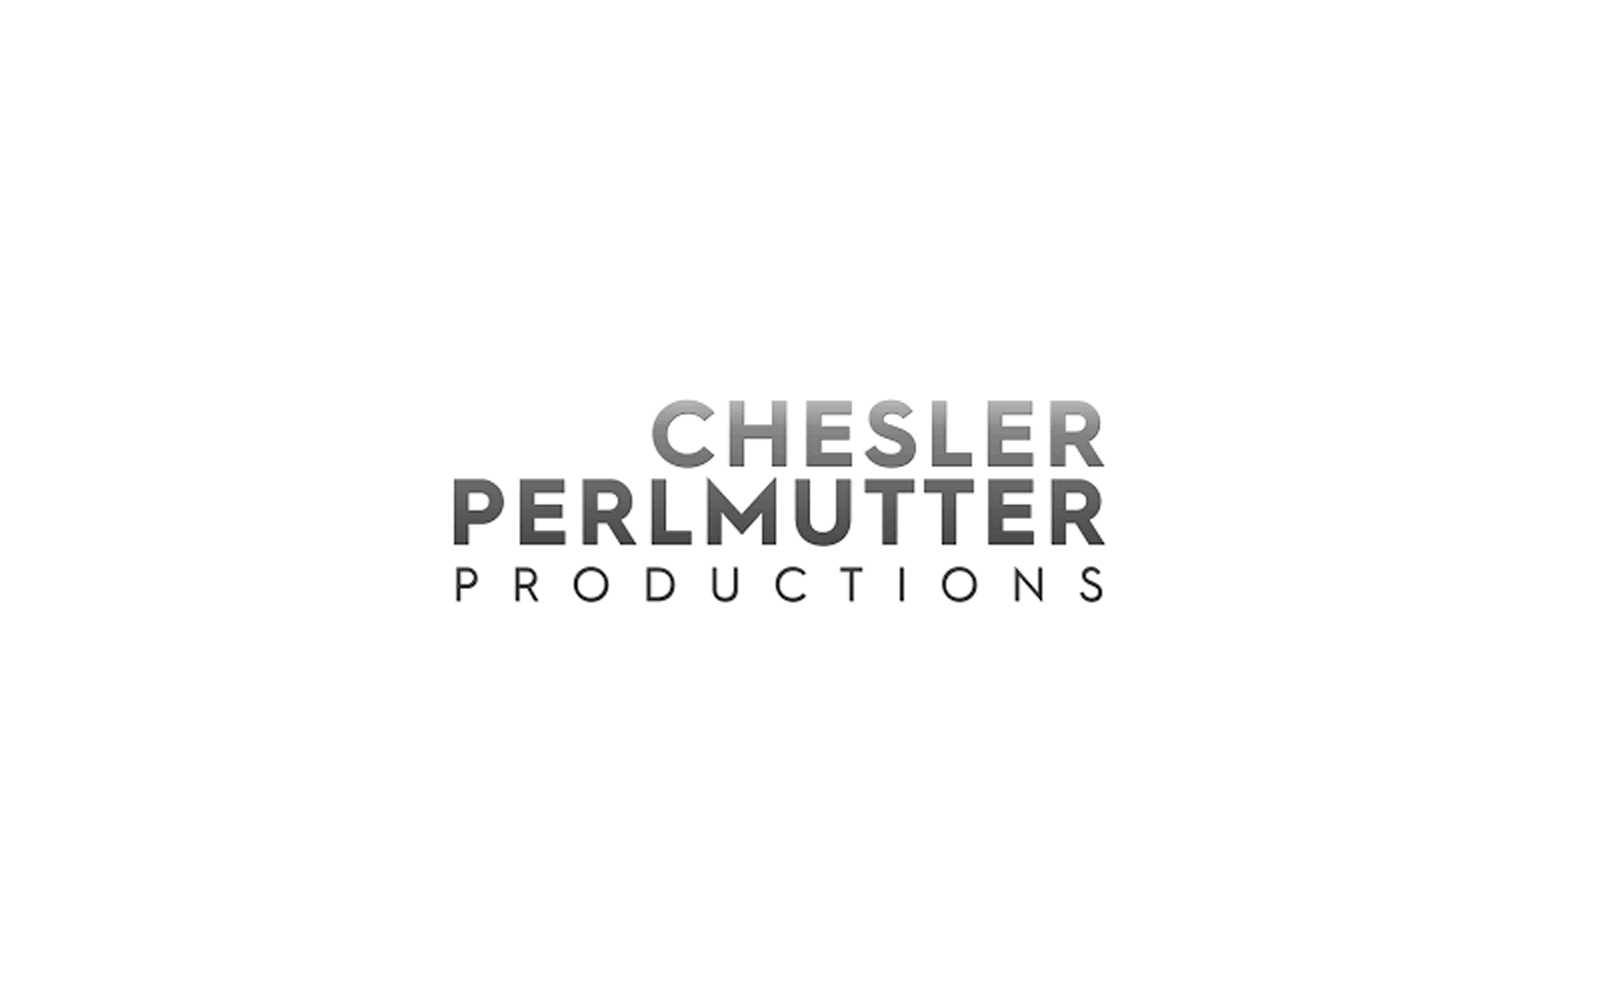 Chesler Perlmutter Productions